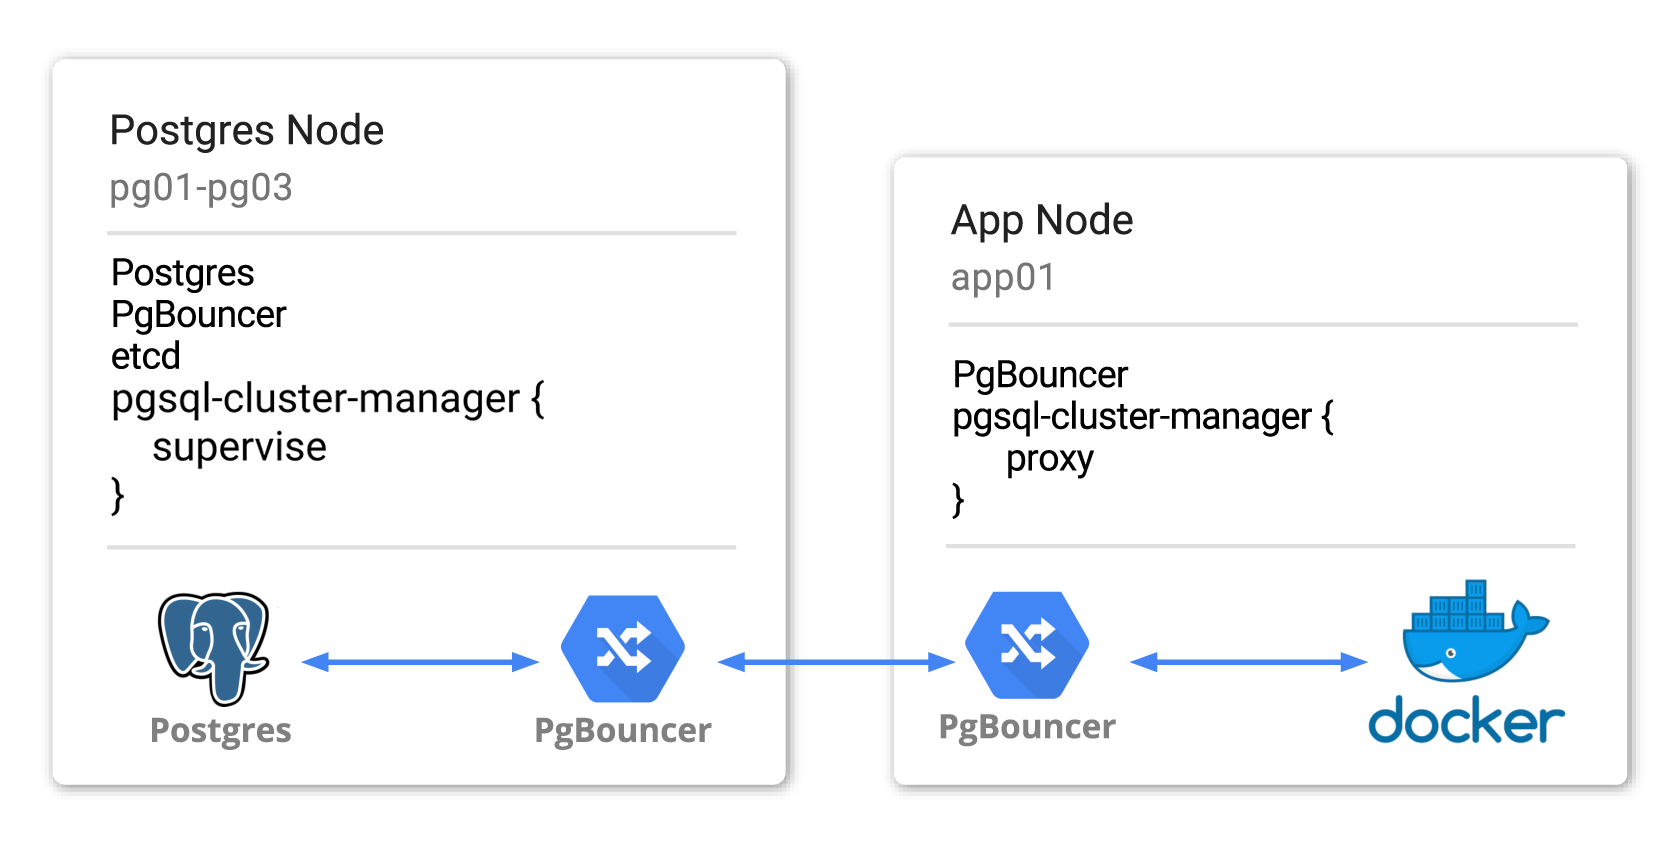 Two node types, Postgres and App machines